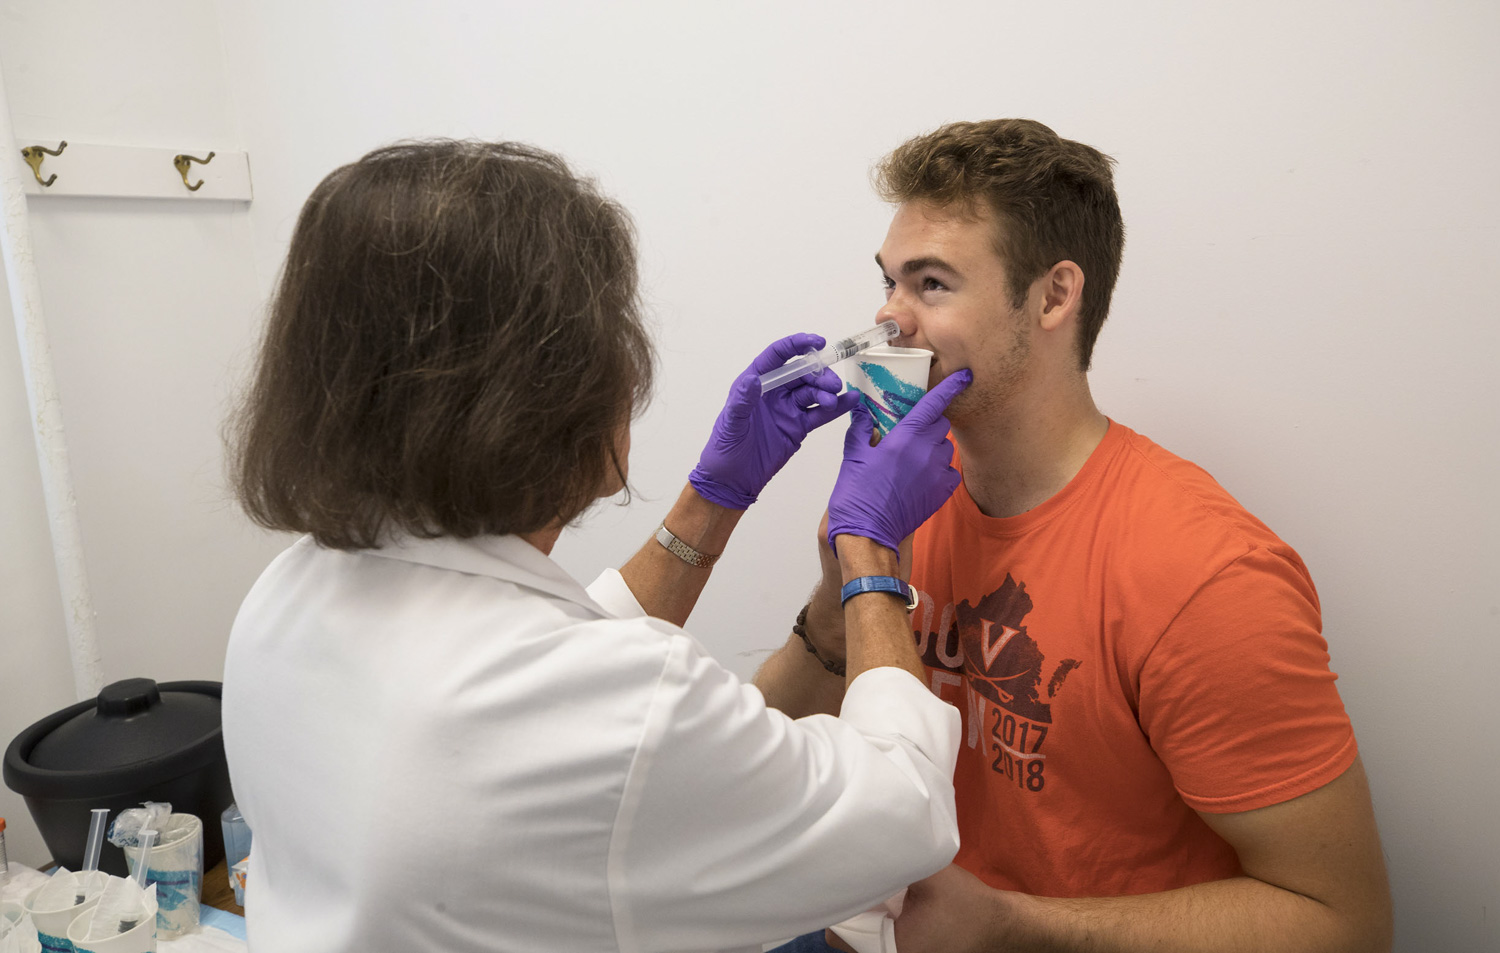 For $1,200, second-year student Jonathon Rimmington will be infected twice with rhinovirus, a cause of the common cold, and check in periodically so researchers can study his immune response.